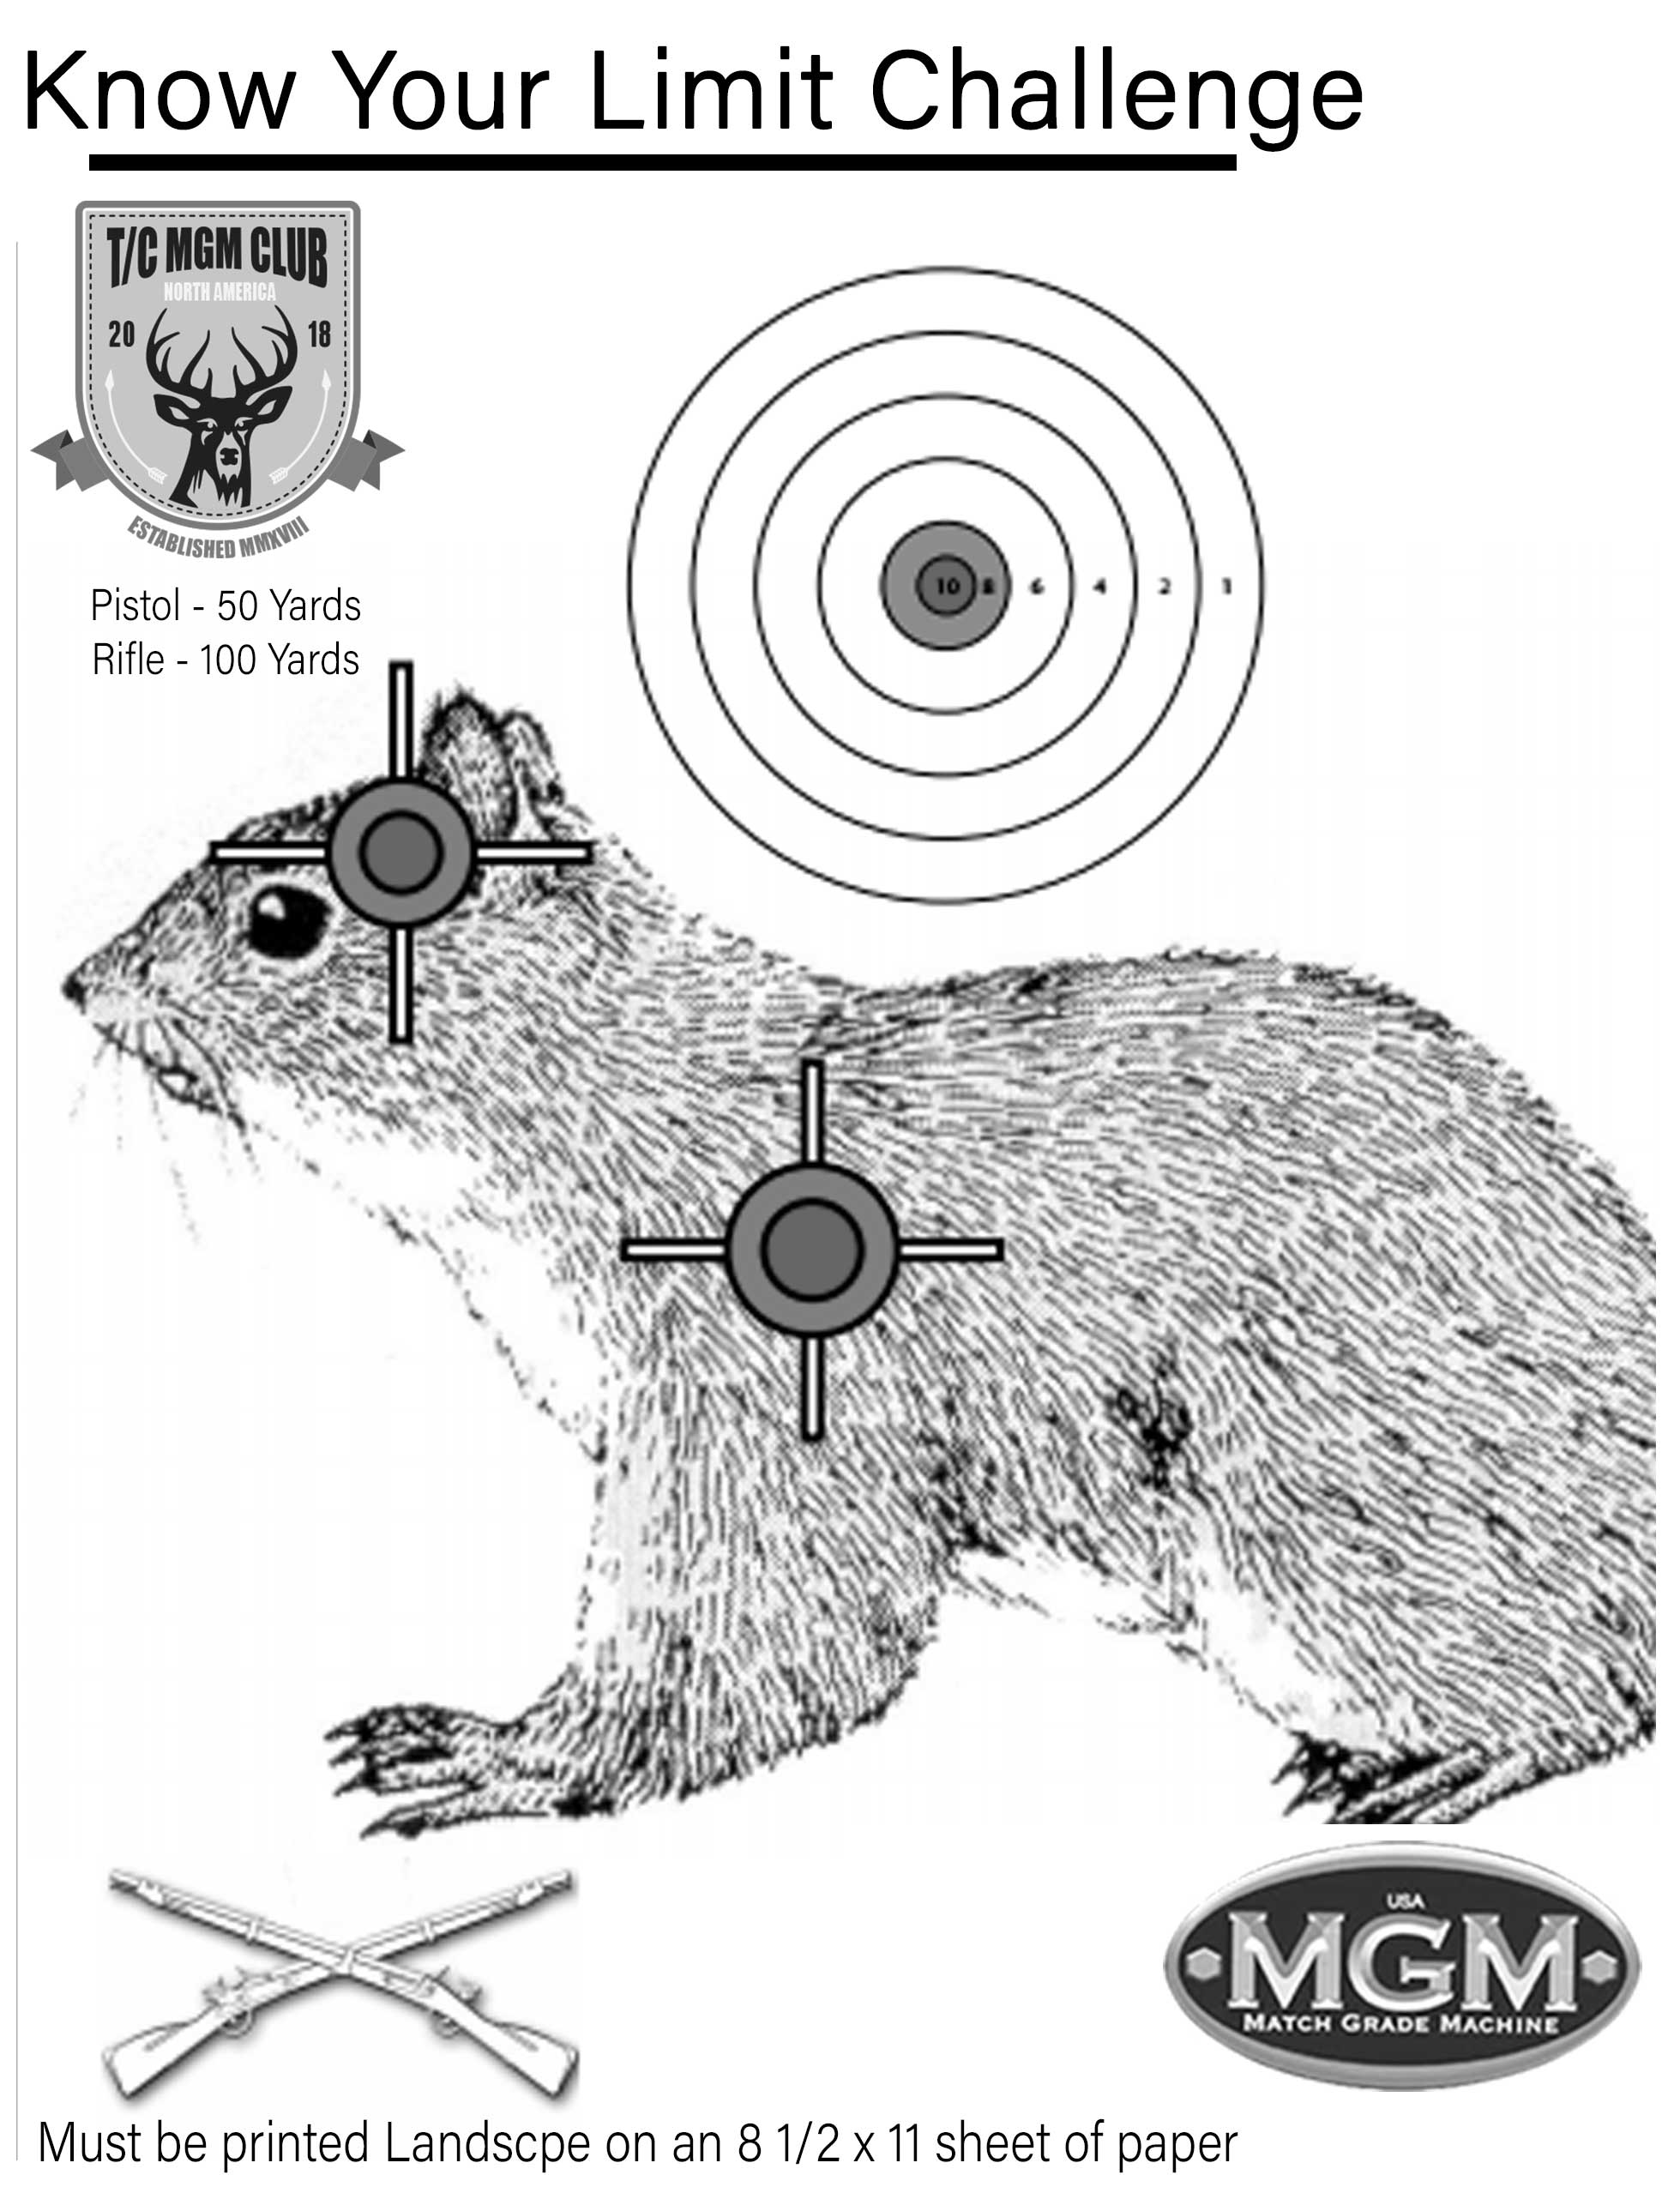 image regarding Squirrel Target Printable identify Realize Your Reduce - August 2018 Regular T/C MGM Club Issue